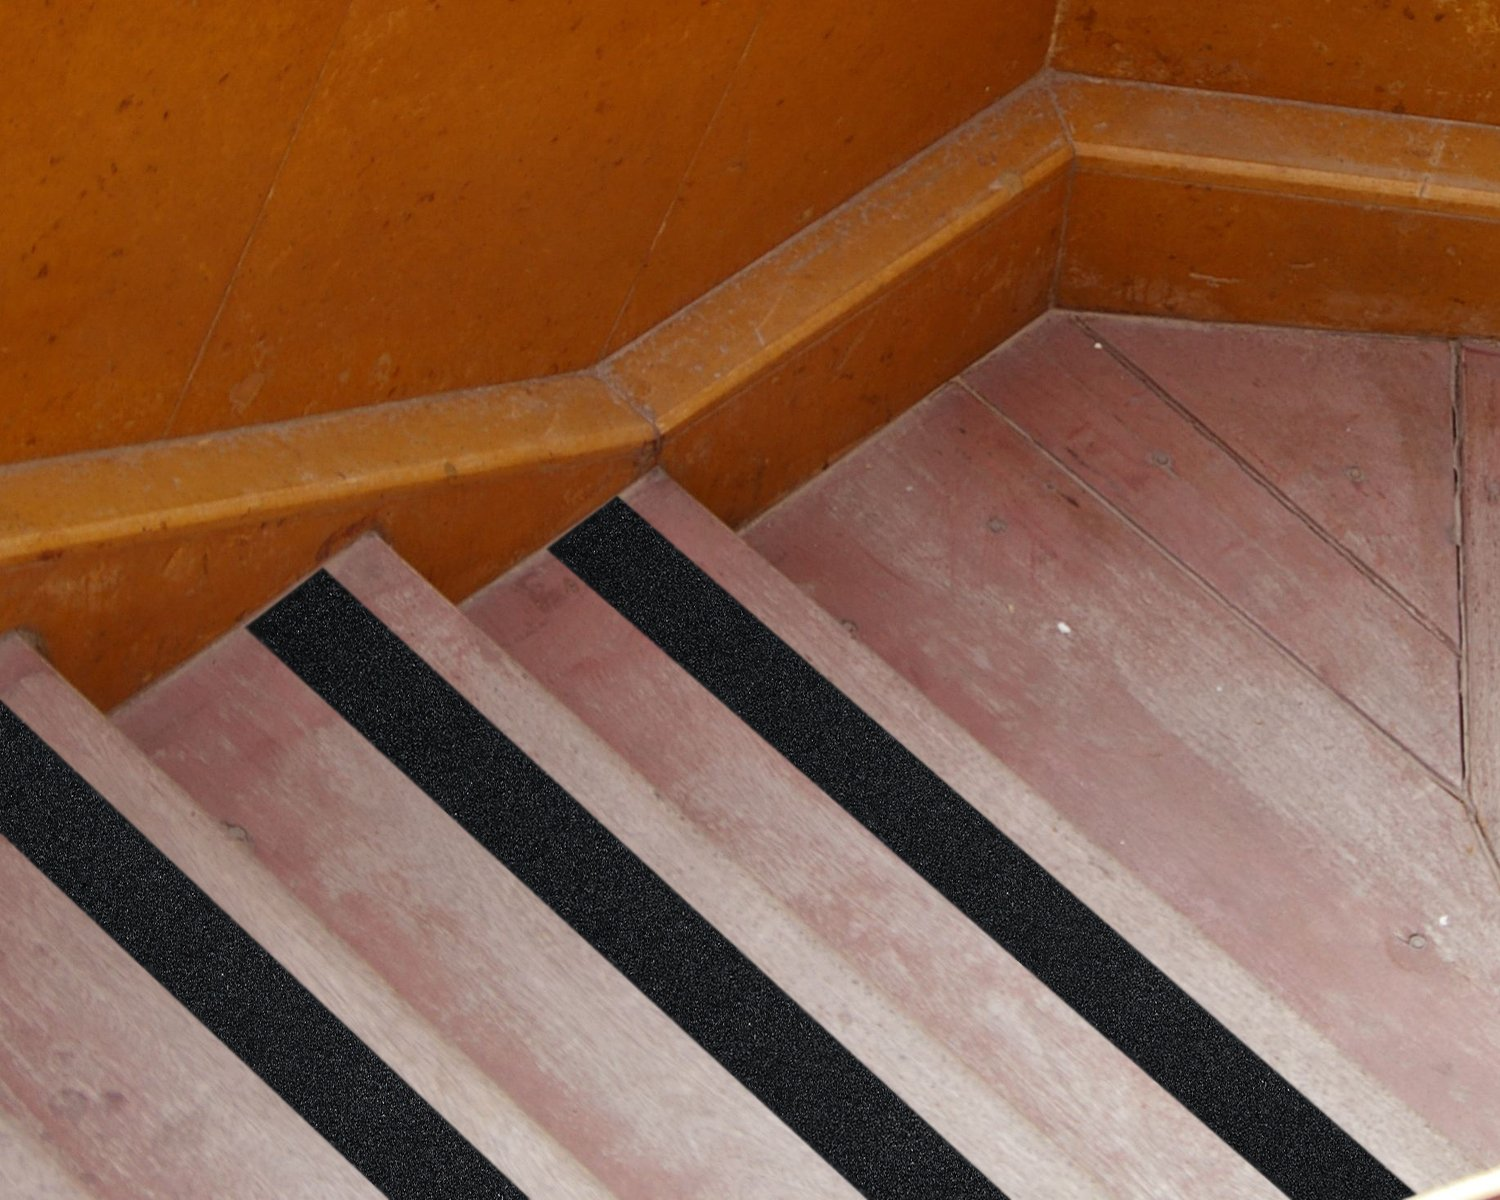 Anti Slip Tape - 2 Inch x 30 Foot High Traction Grip Tape 60 Grit for Stairs Indoor Outdoor (Black) by Cheerybond (Image #6)